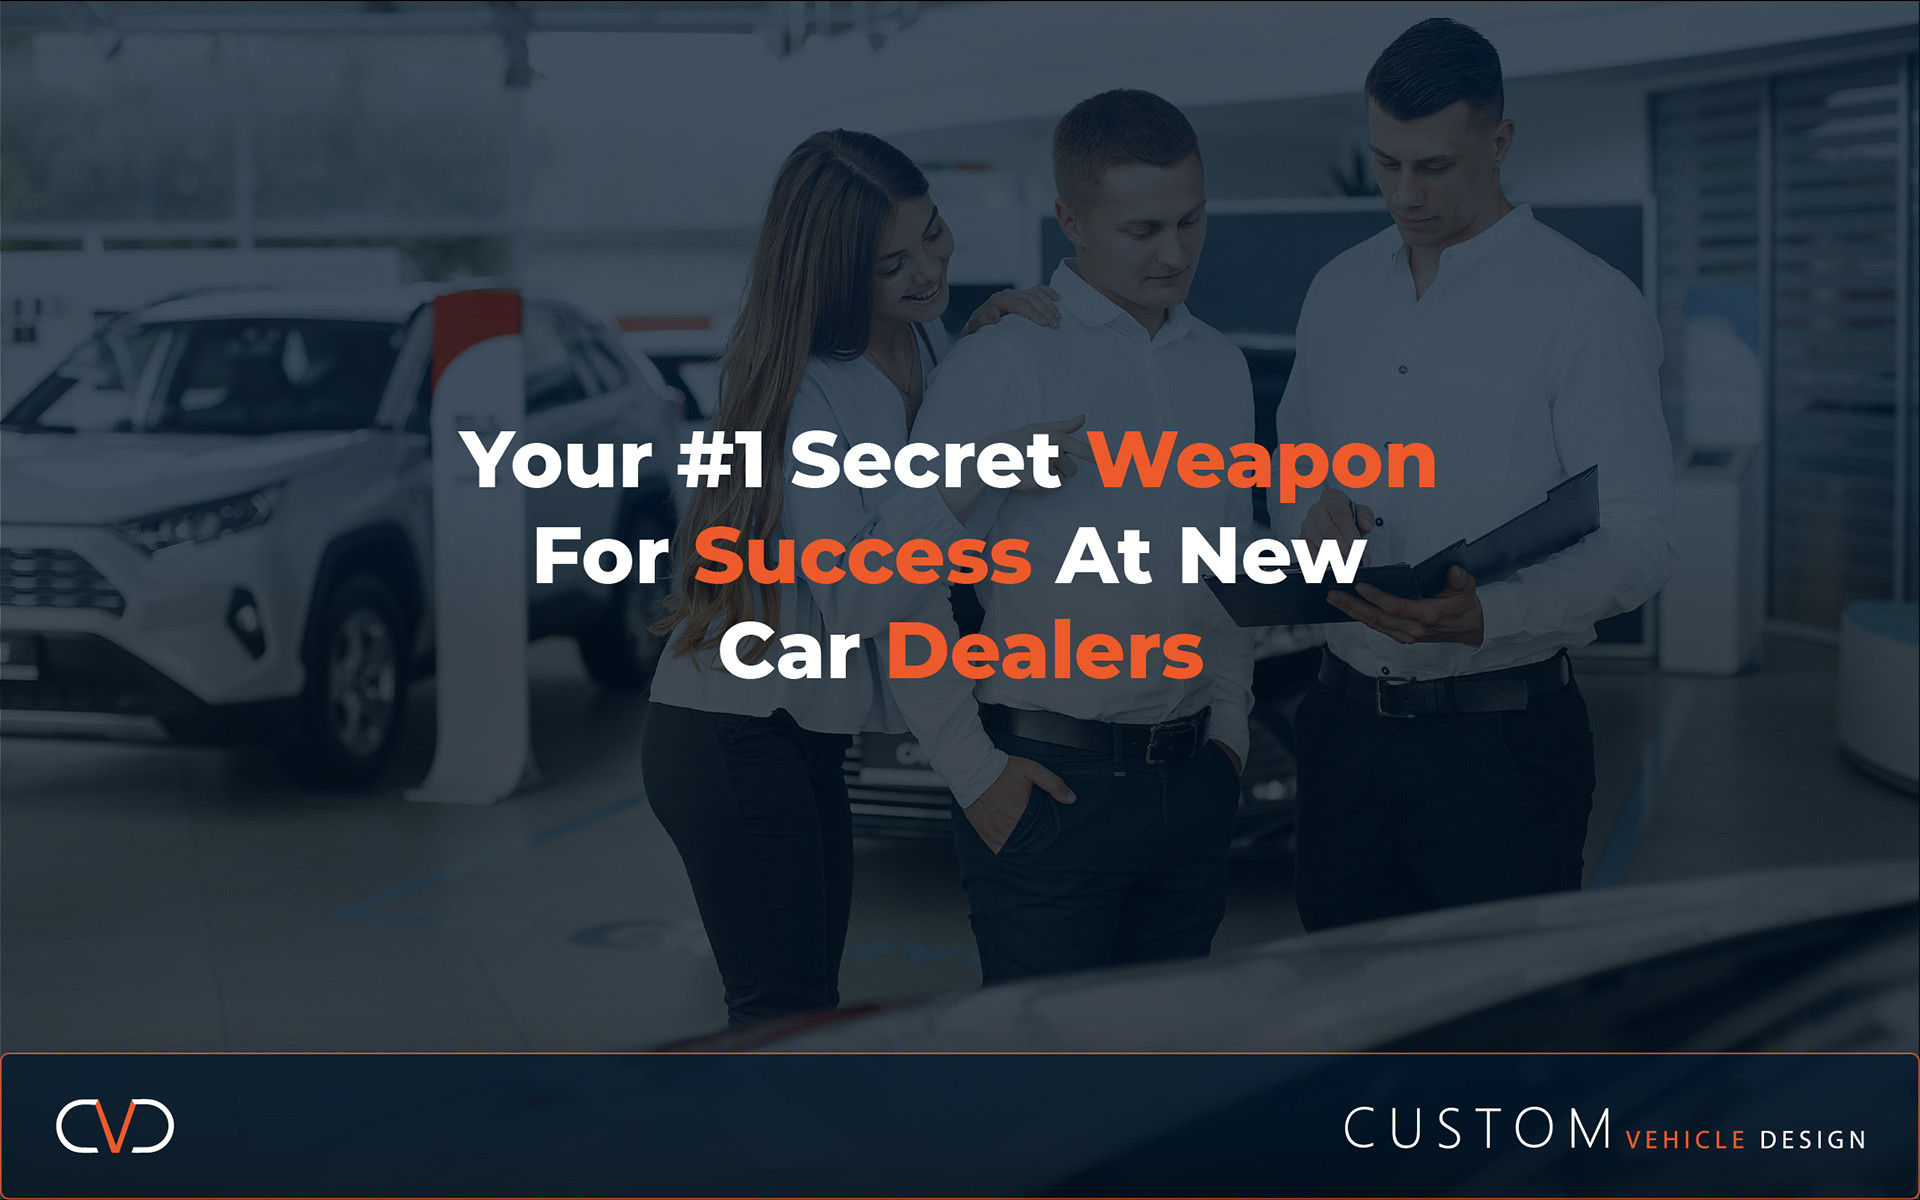 Your #1 Secret Weapon For Success At New Car Dealers